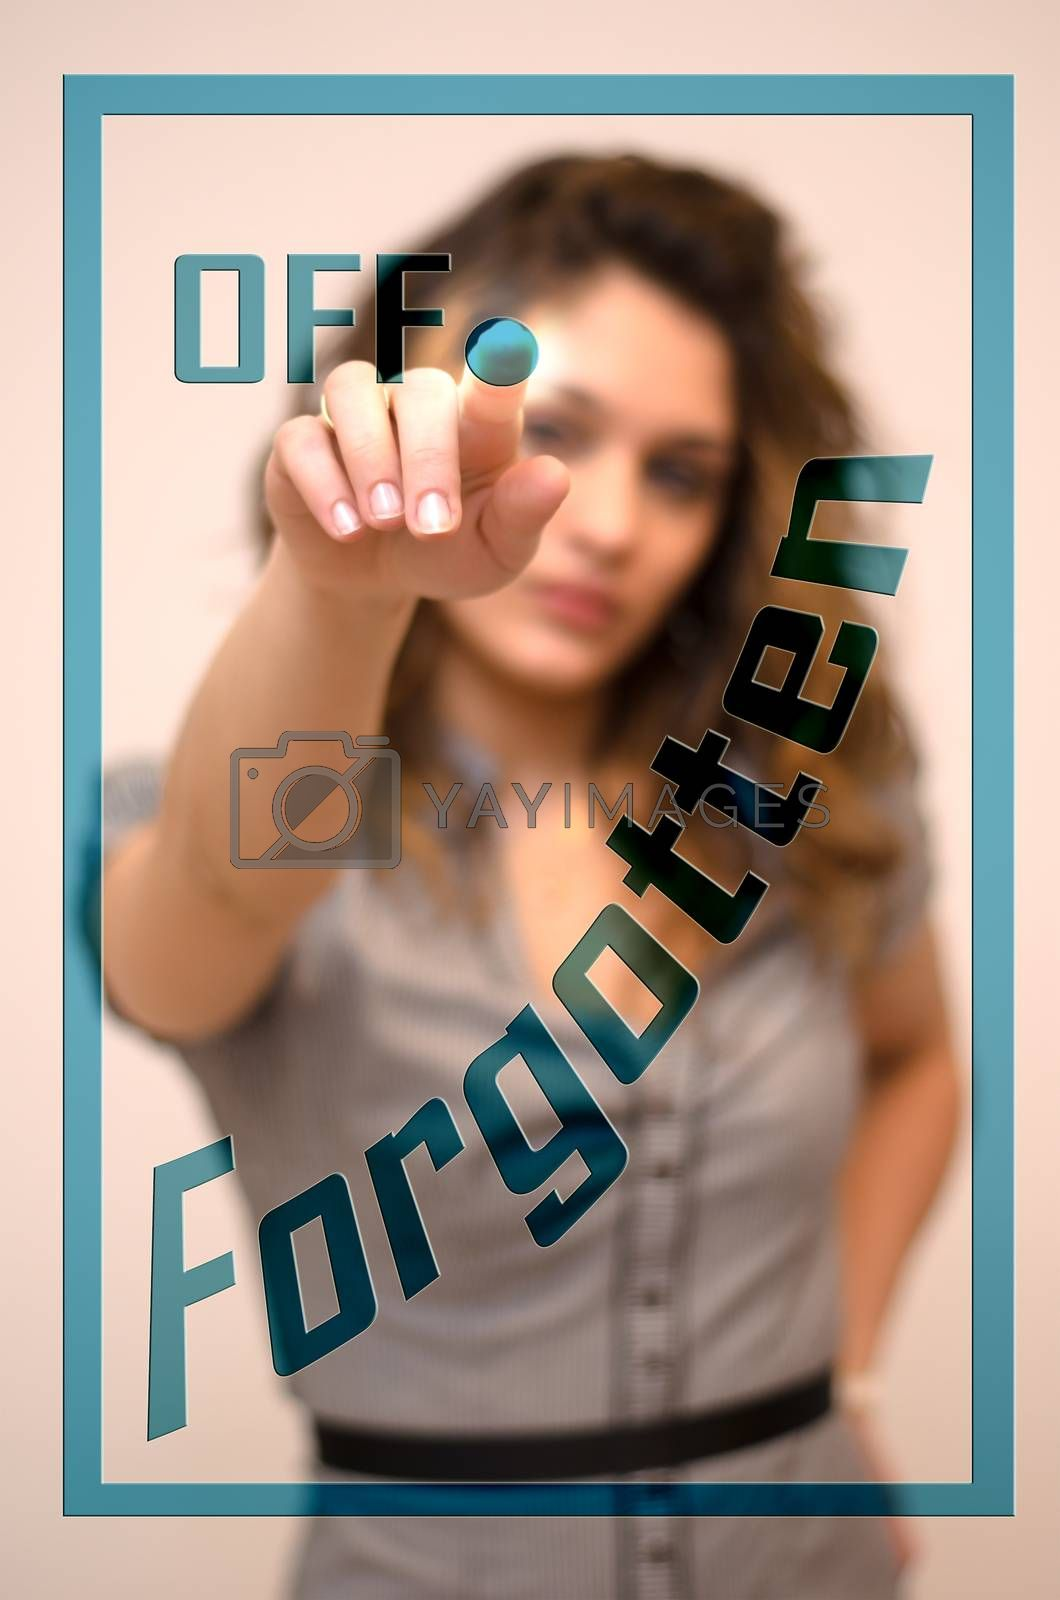 Royalty free image of woman switching off Forgotten on digital interace by vepar5